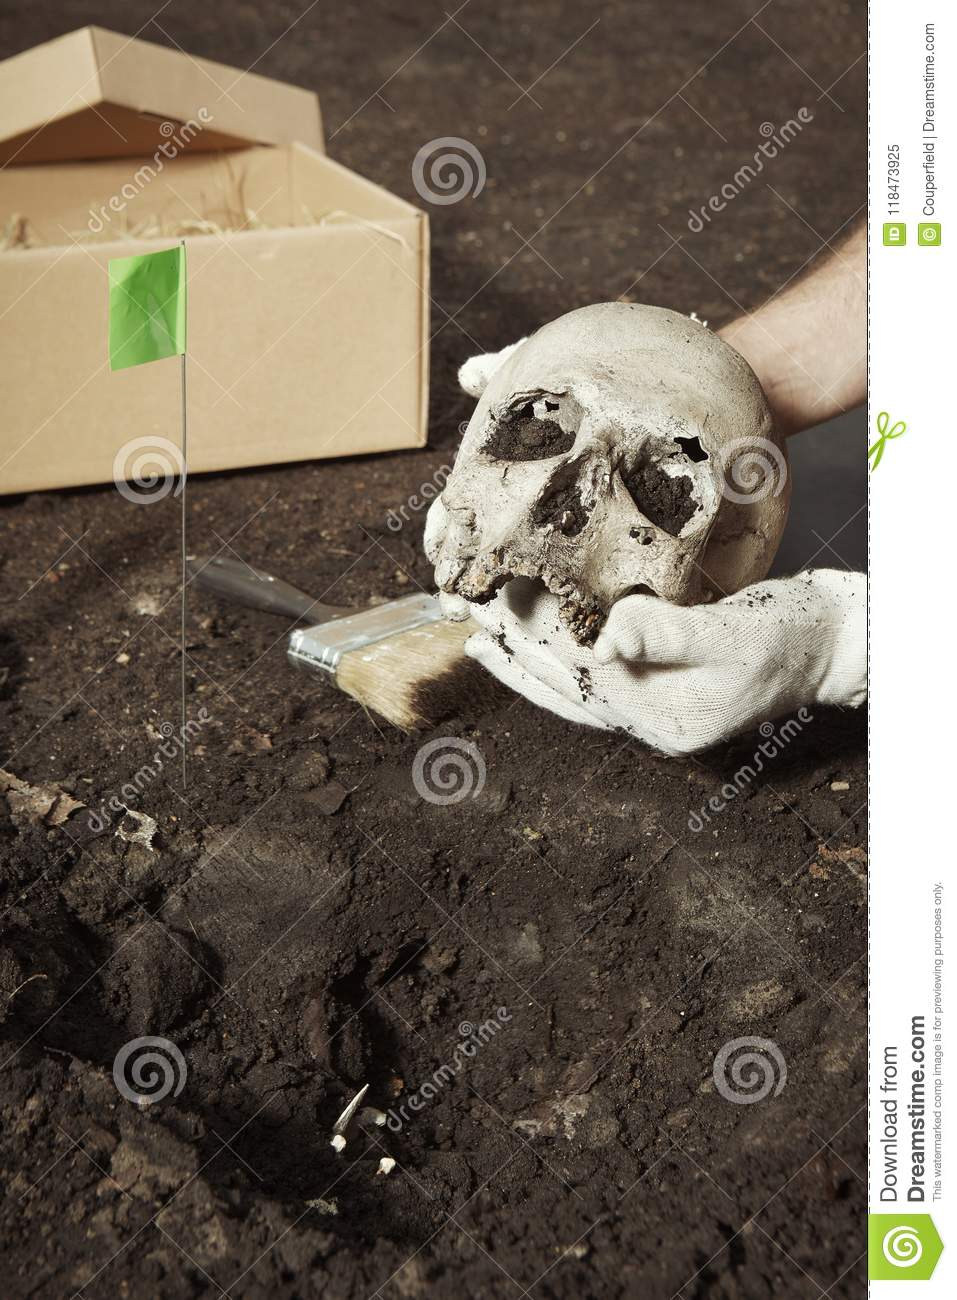 Human skeleton - skull - found and packed by archaeologist on location